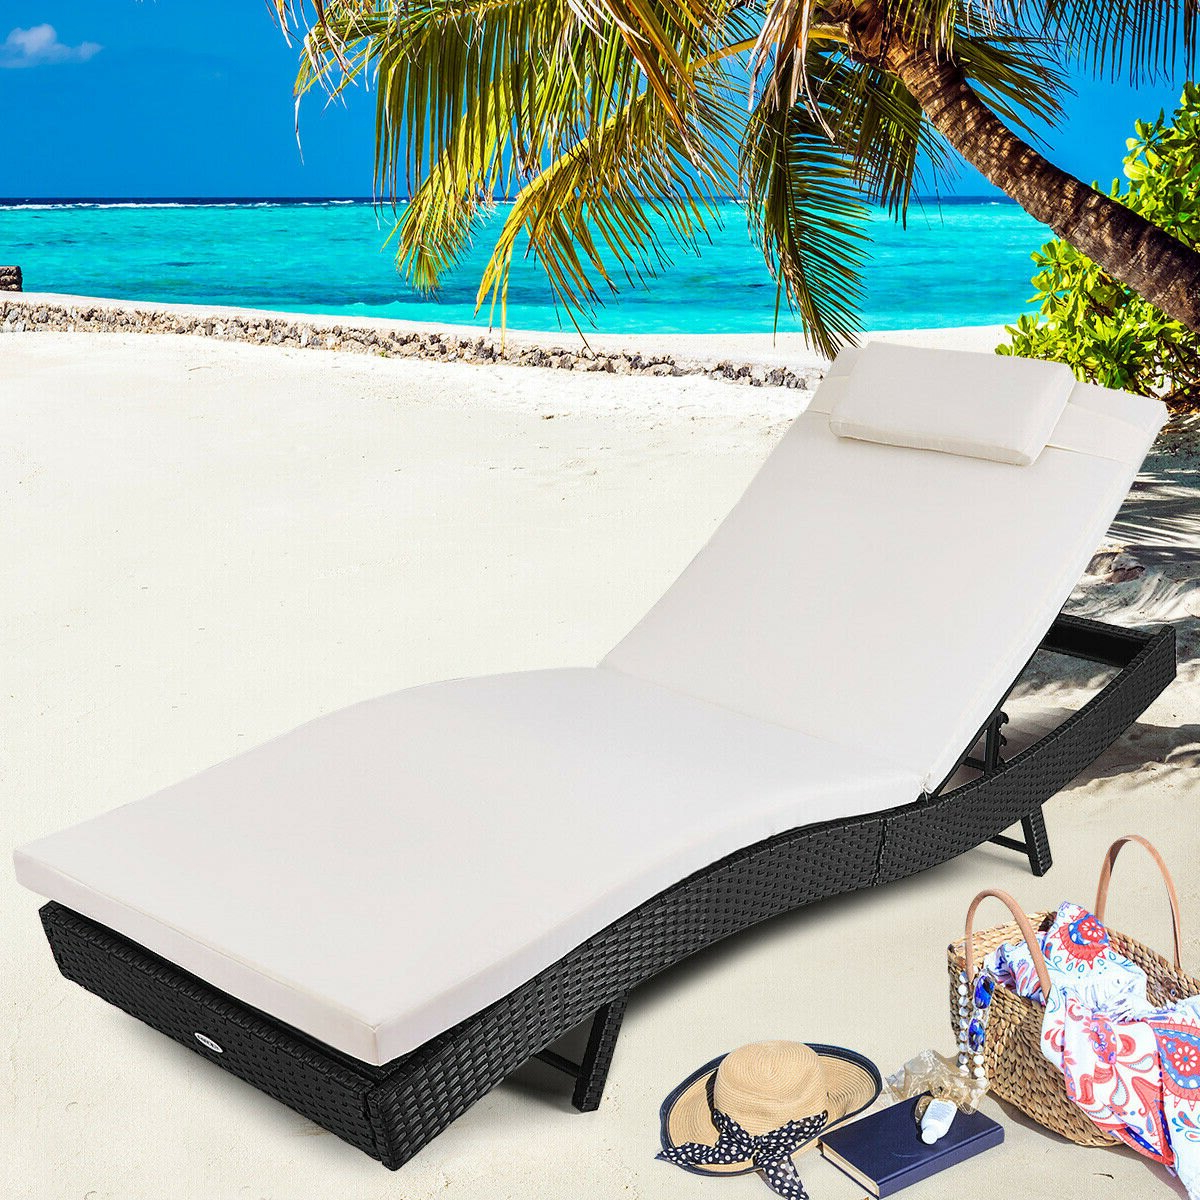 Costway Adjustable Pool Chaise Lounge Chair Outdoor Patio Furniture Pe Wicker W/cushion Within Most Popular White Wicker Adjustable Chaise Loungers With Cushions (View 6 of 25)